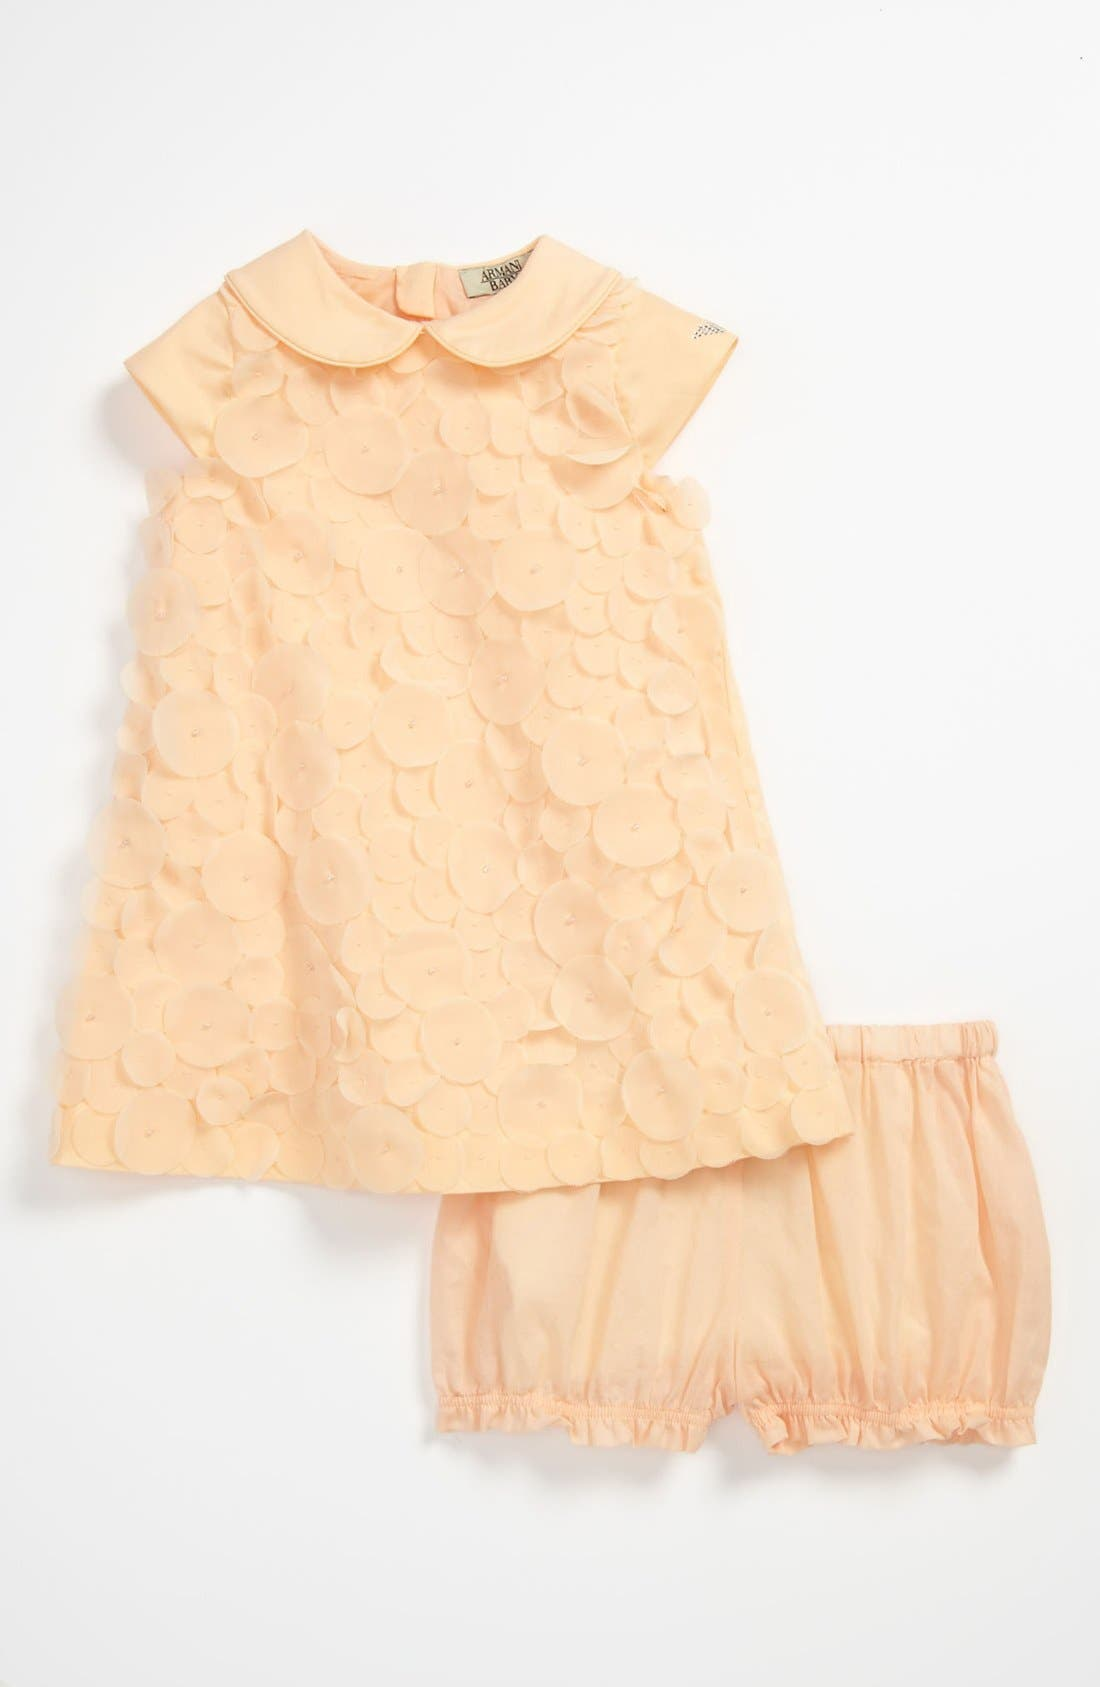 Main Image - Armani Junior 'Disc' Dress & Bloomers (Baby)